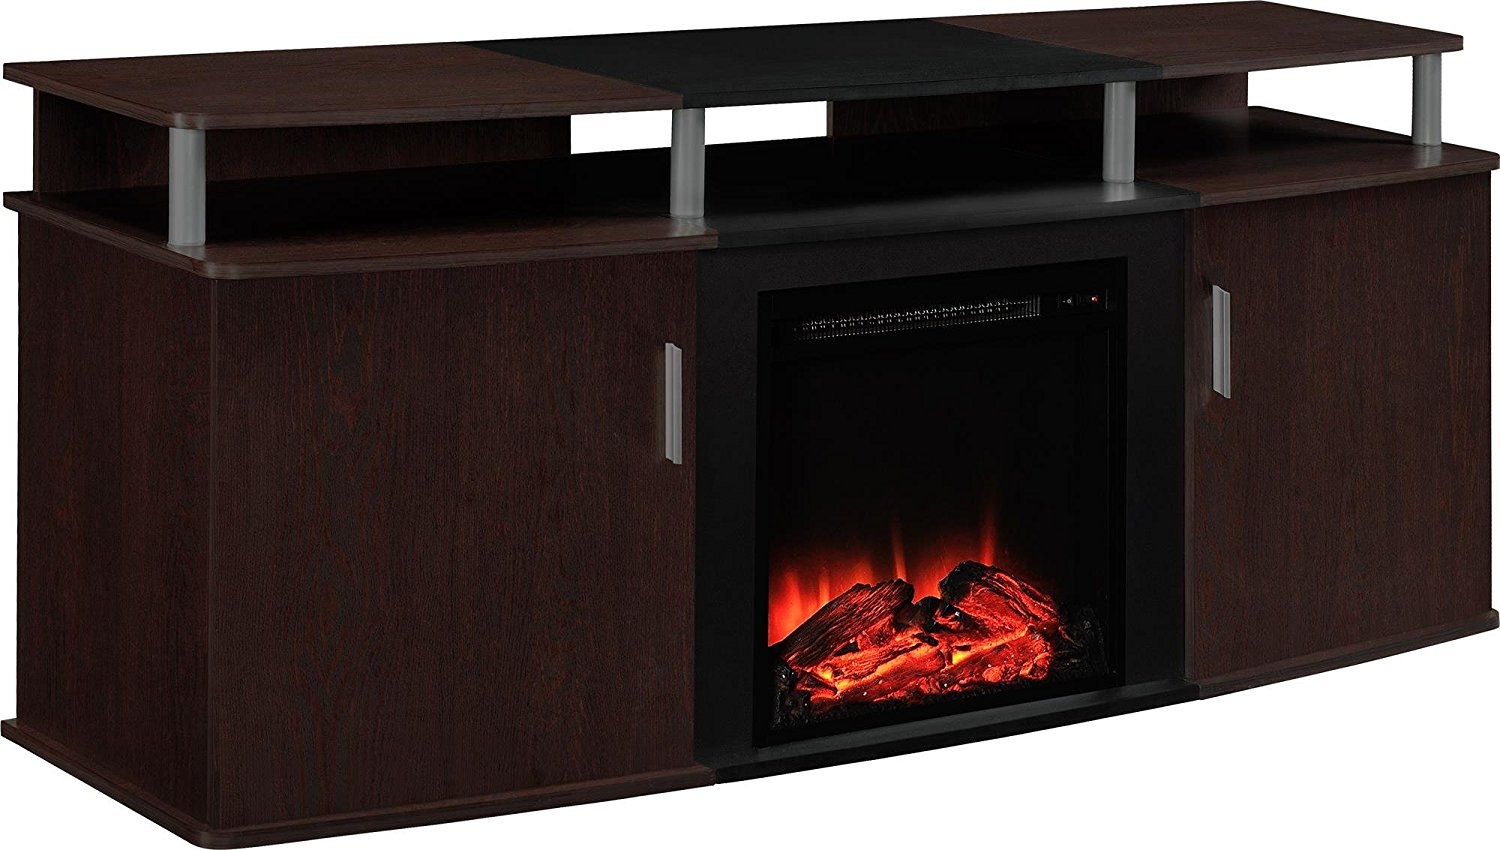 Best Electric Fireplace Amp Stoves For 2019 Reviews With